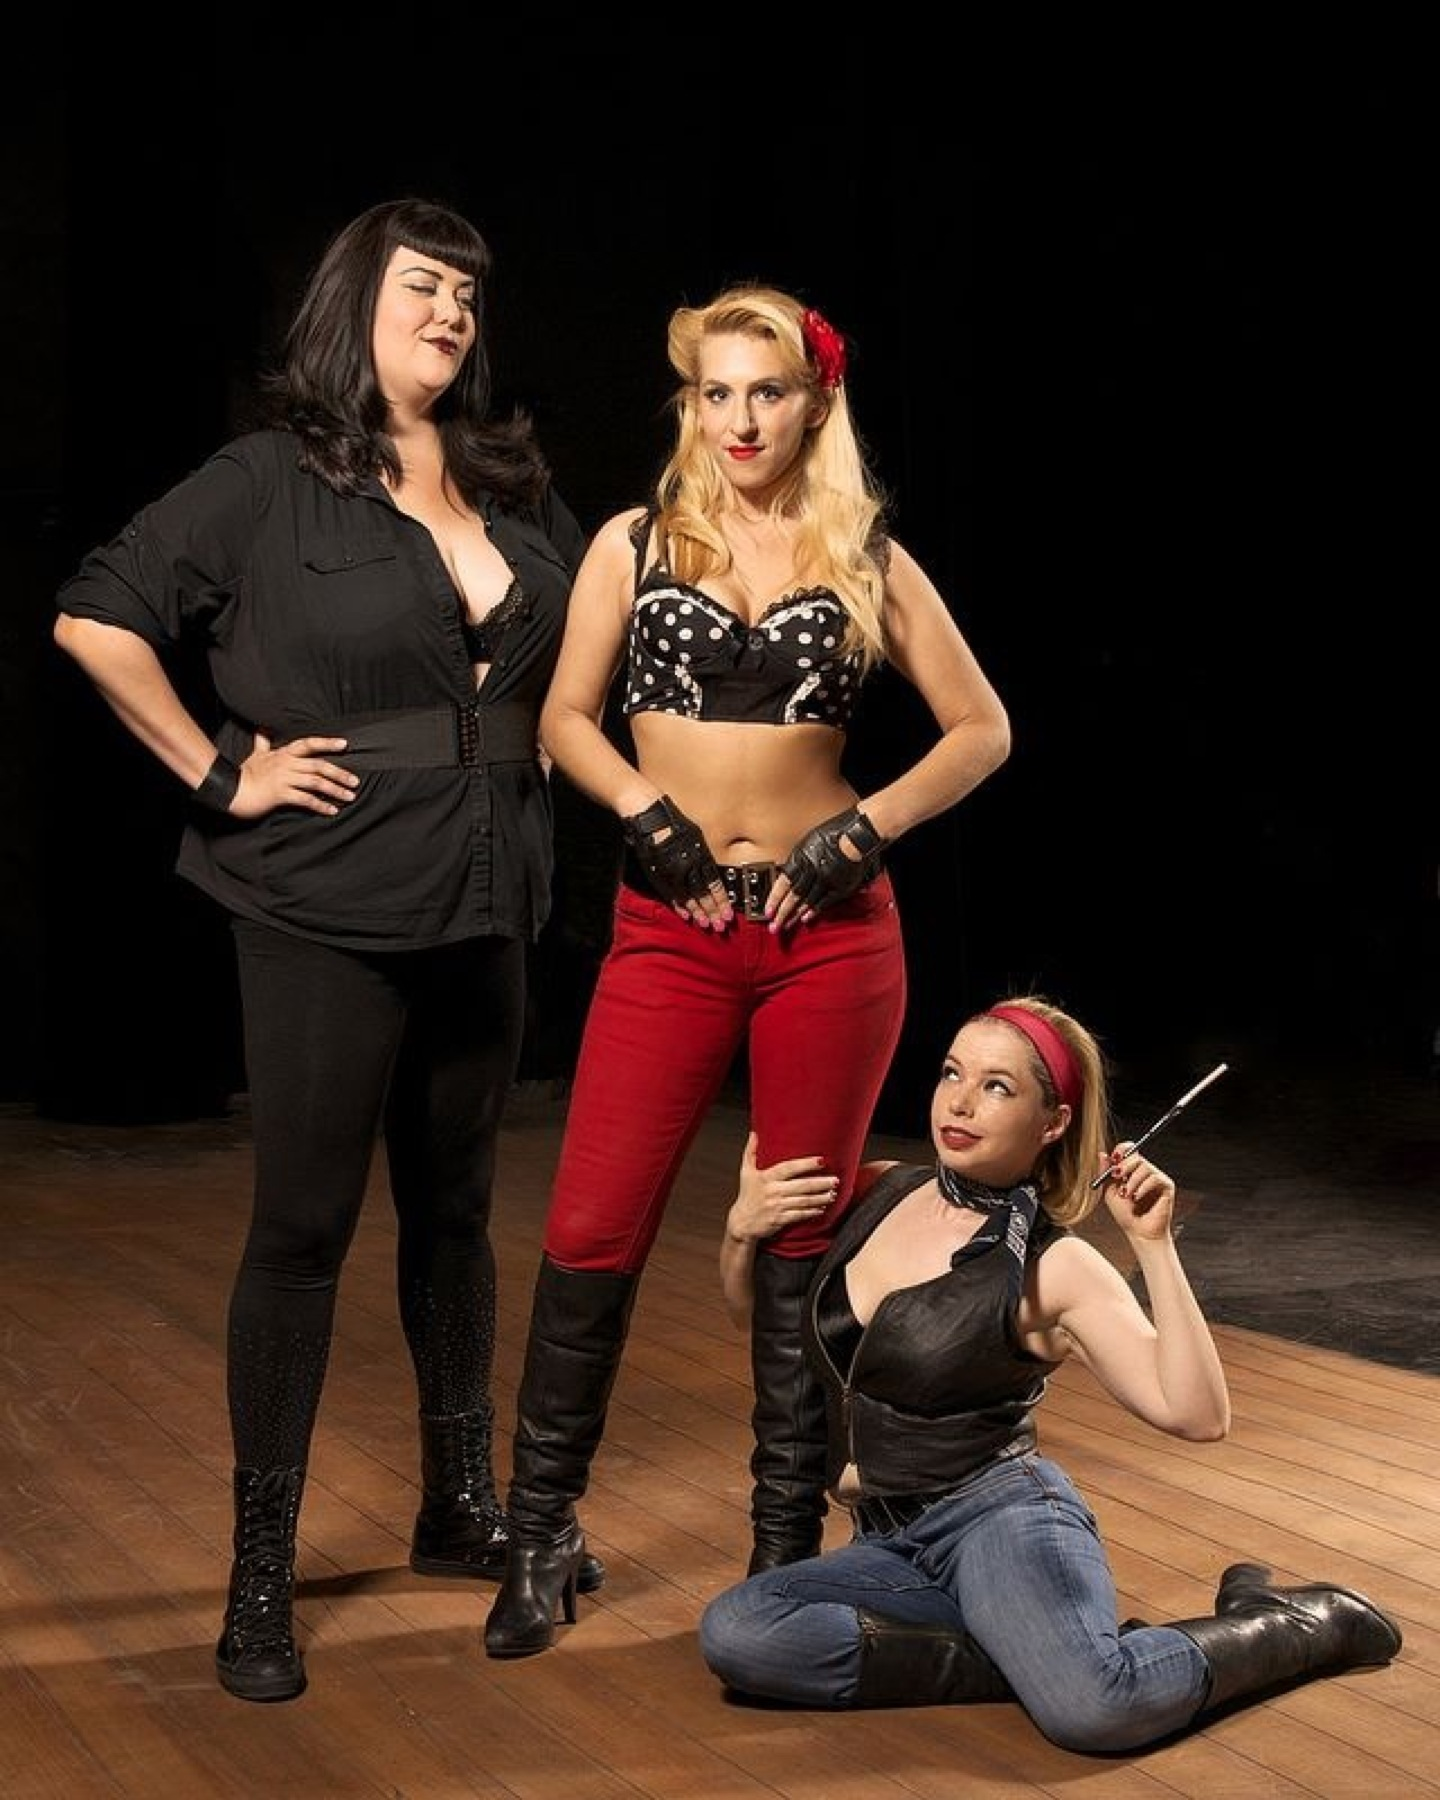 """Chicks With Dicks,"" Stray Cat Theatre, 2013. (Photo by John Groseclose) (The actresses are unidentified; if you know them, please message the webmaster using the Contact button)"